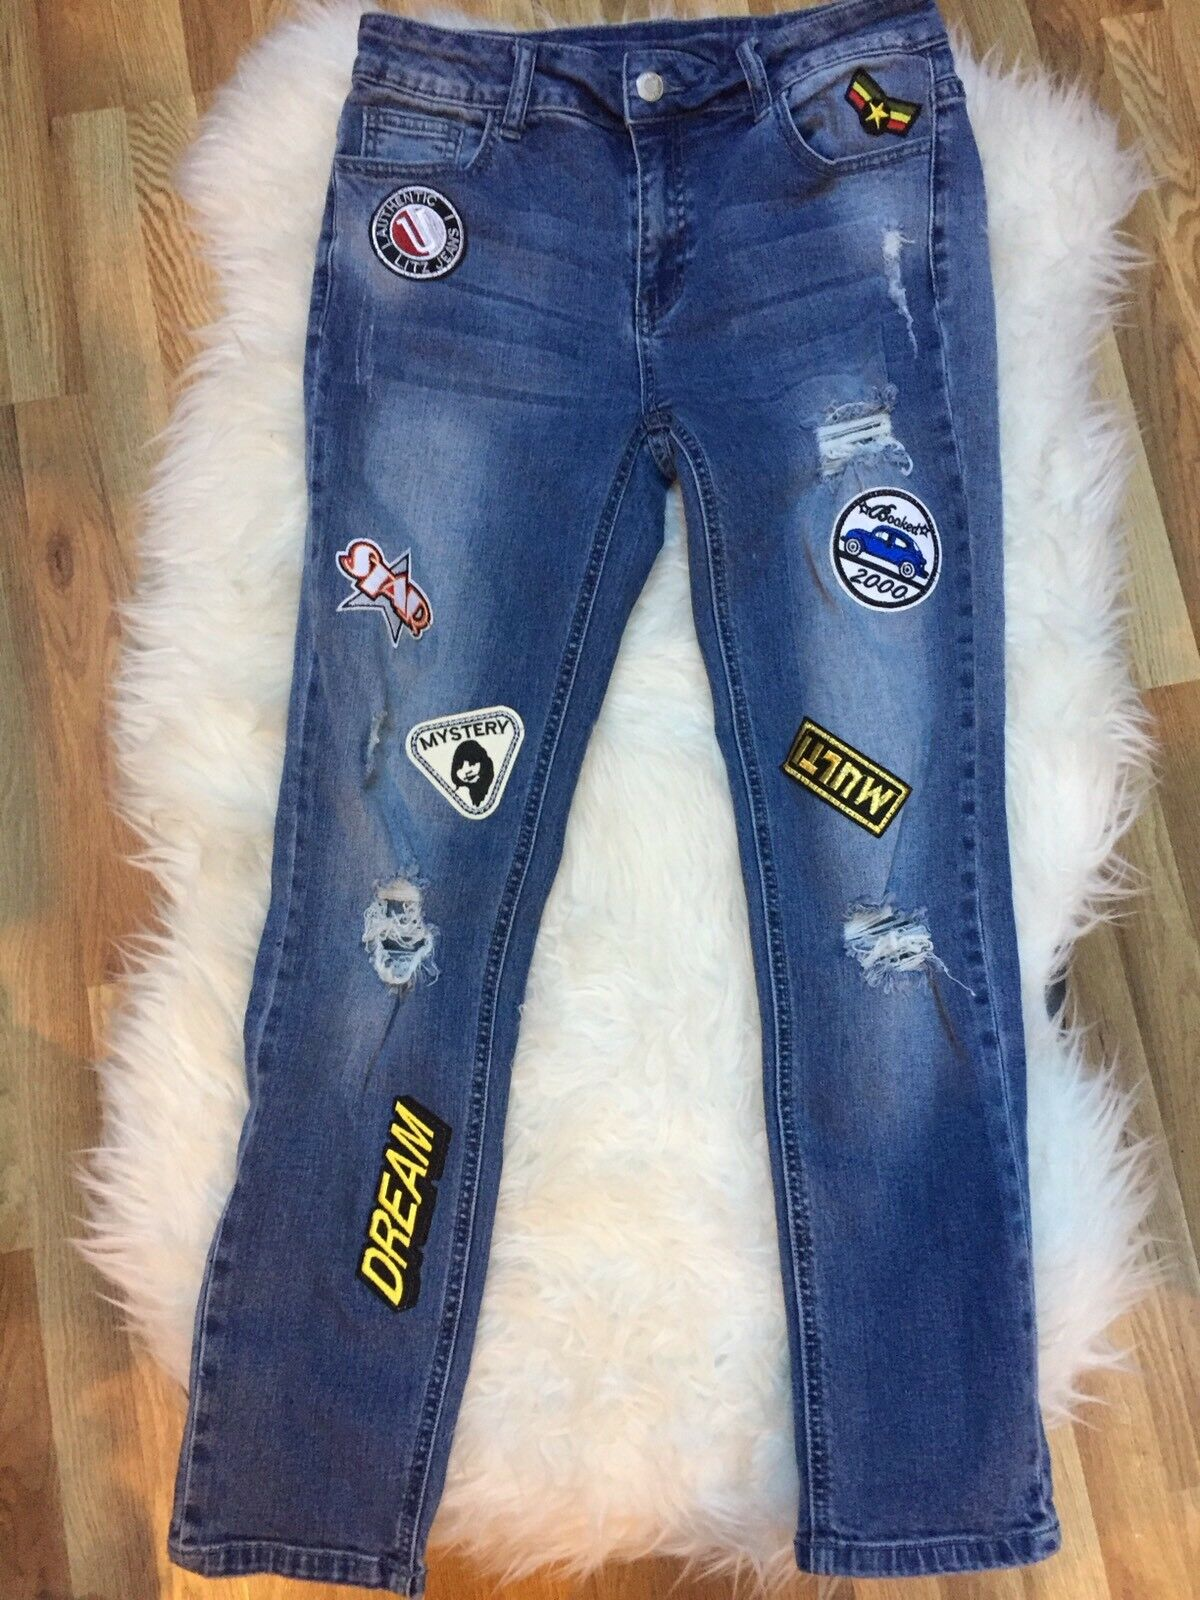 Litz Distressed bluee Embroidered Patch Skinny Jeans Size 27